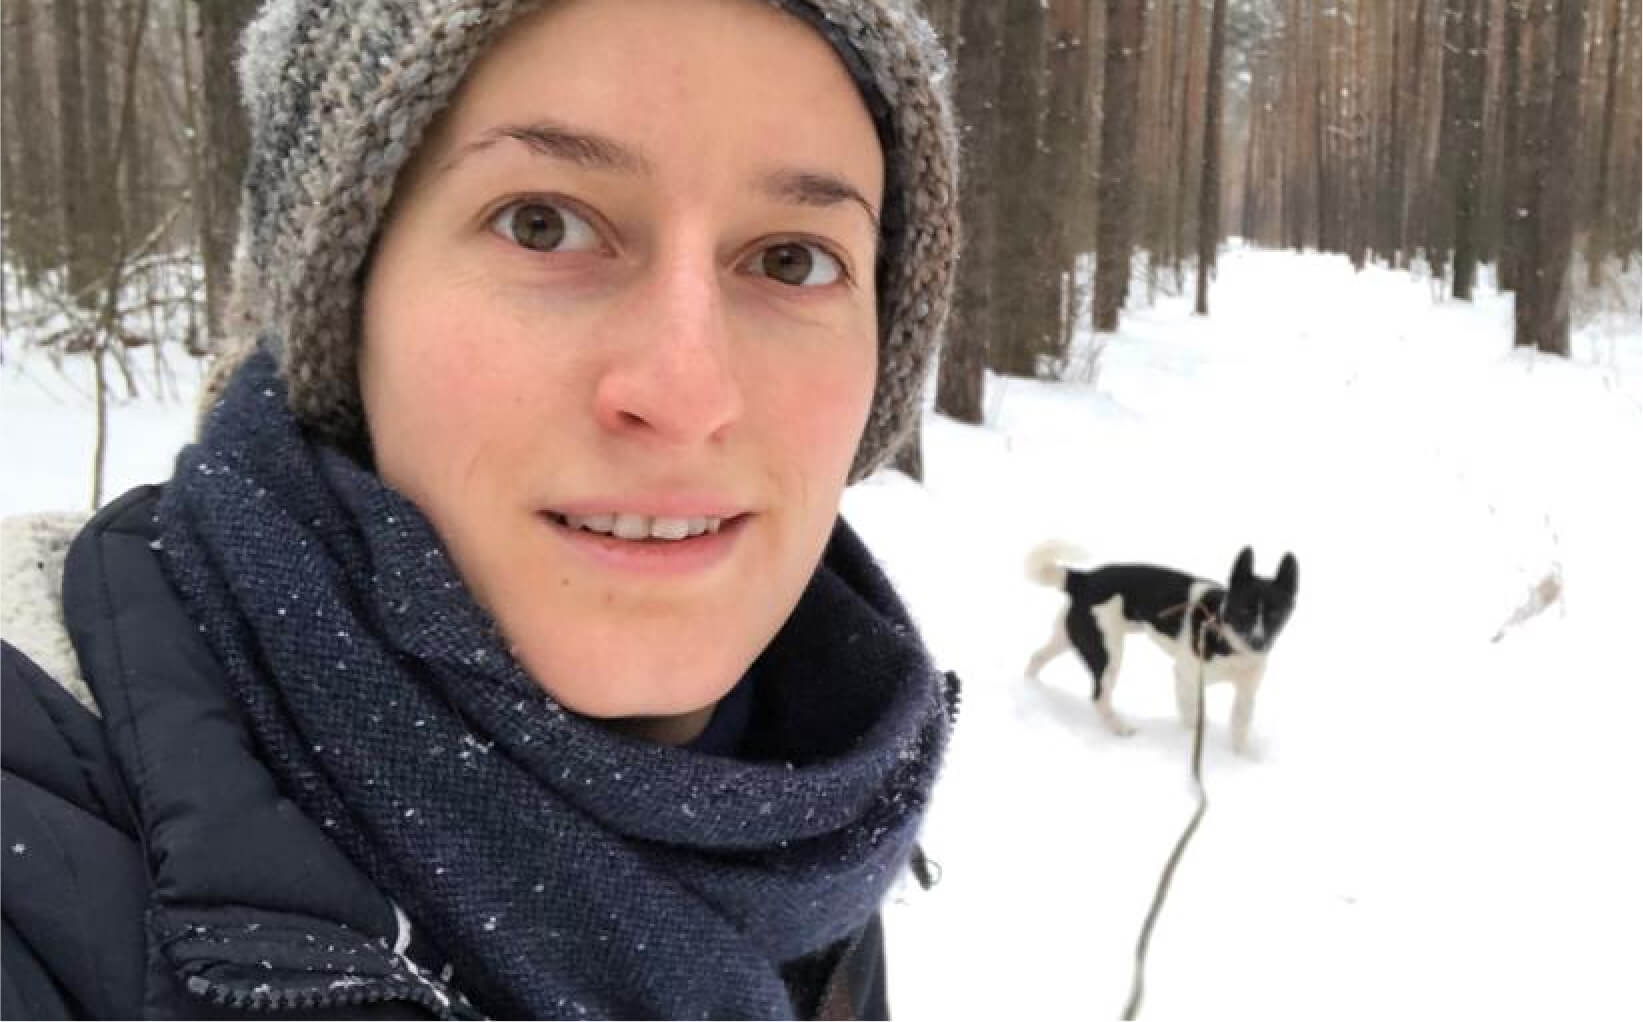 Daria takes a selfie while walking a dog in the snow